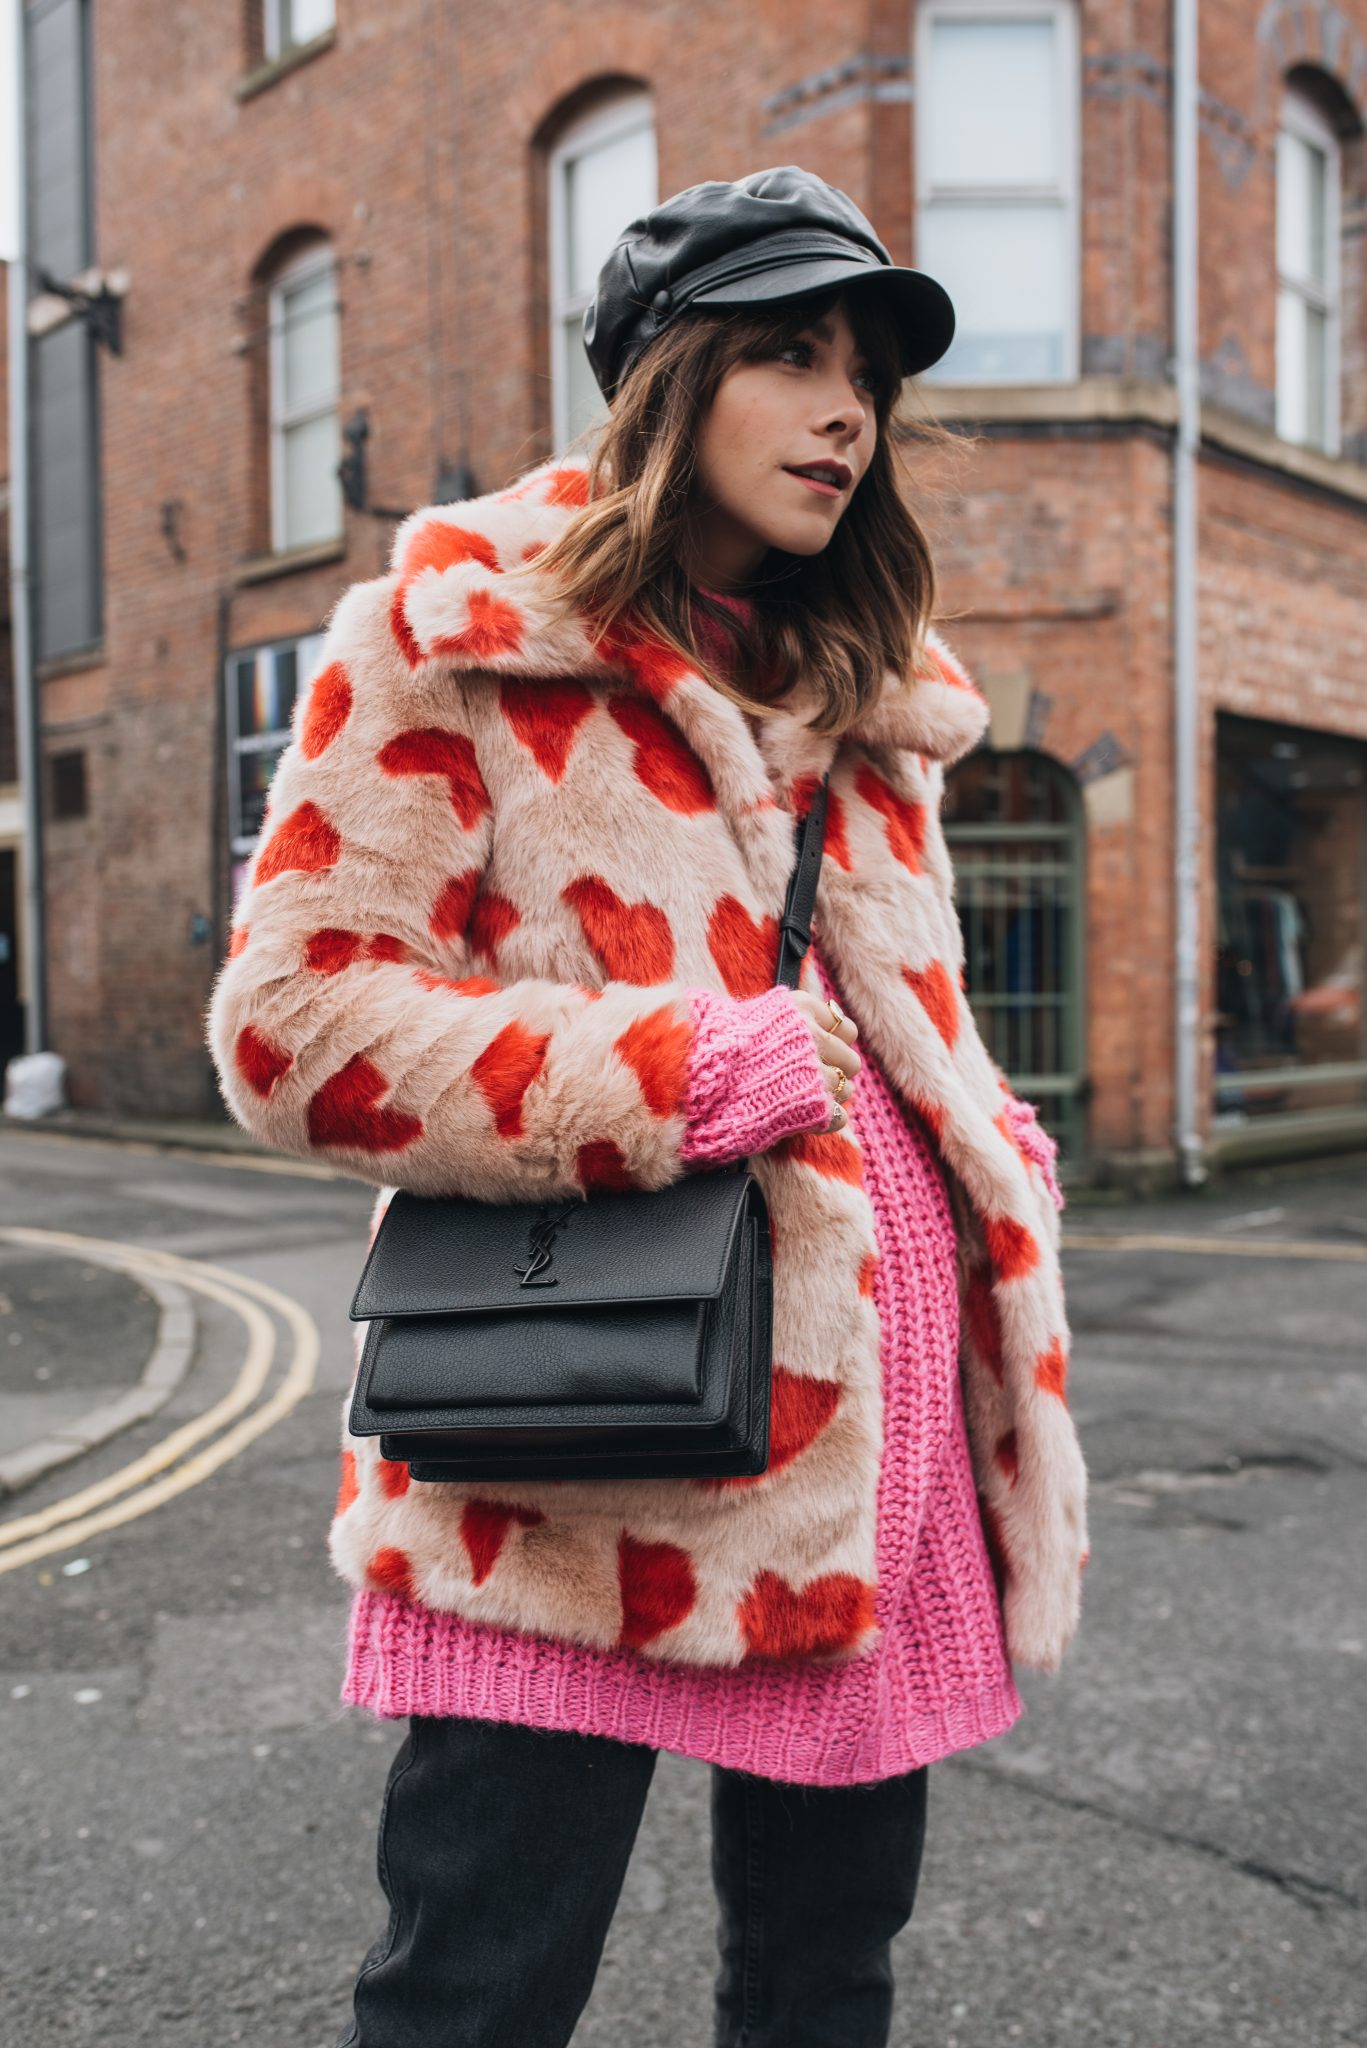 HOW TO WEAR COLOURFUL FAUX FUR IN WINTER